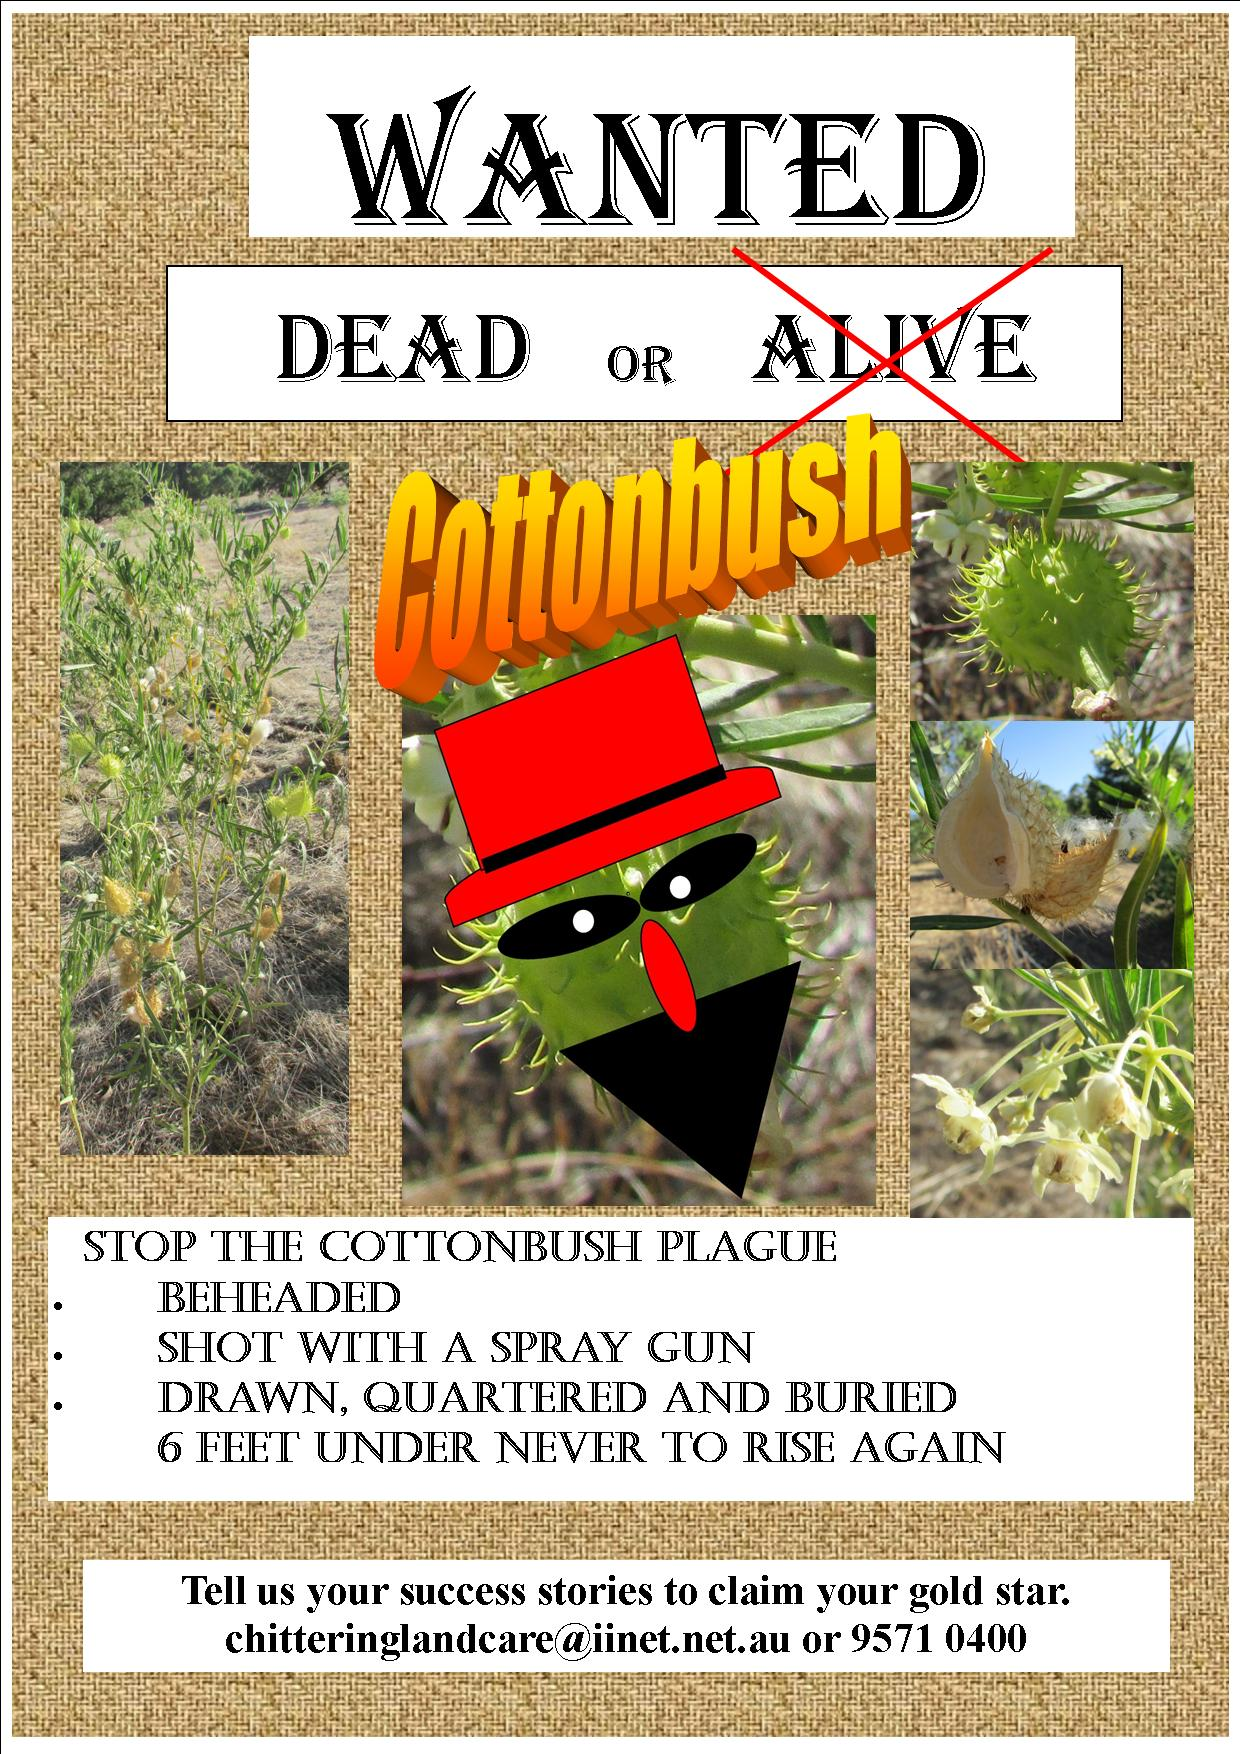 Dead or alive Cottonbush poster